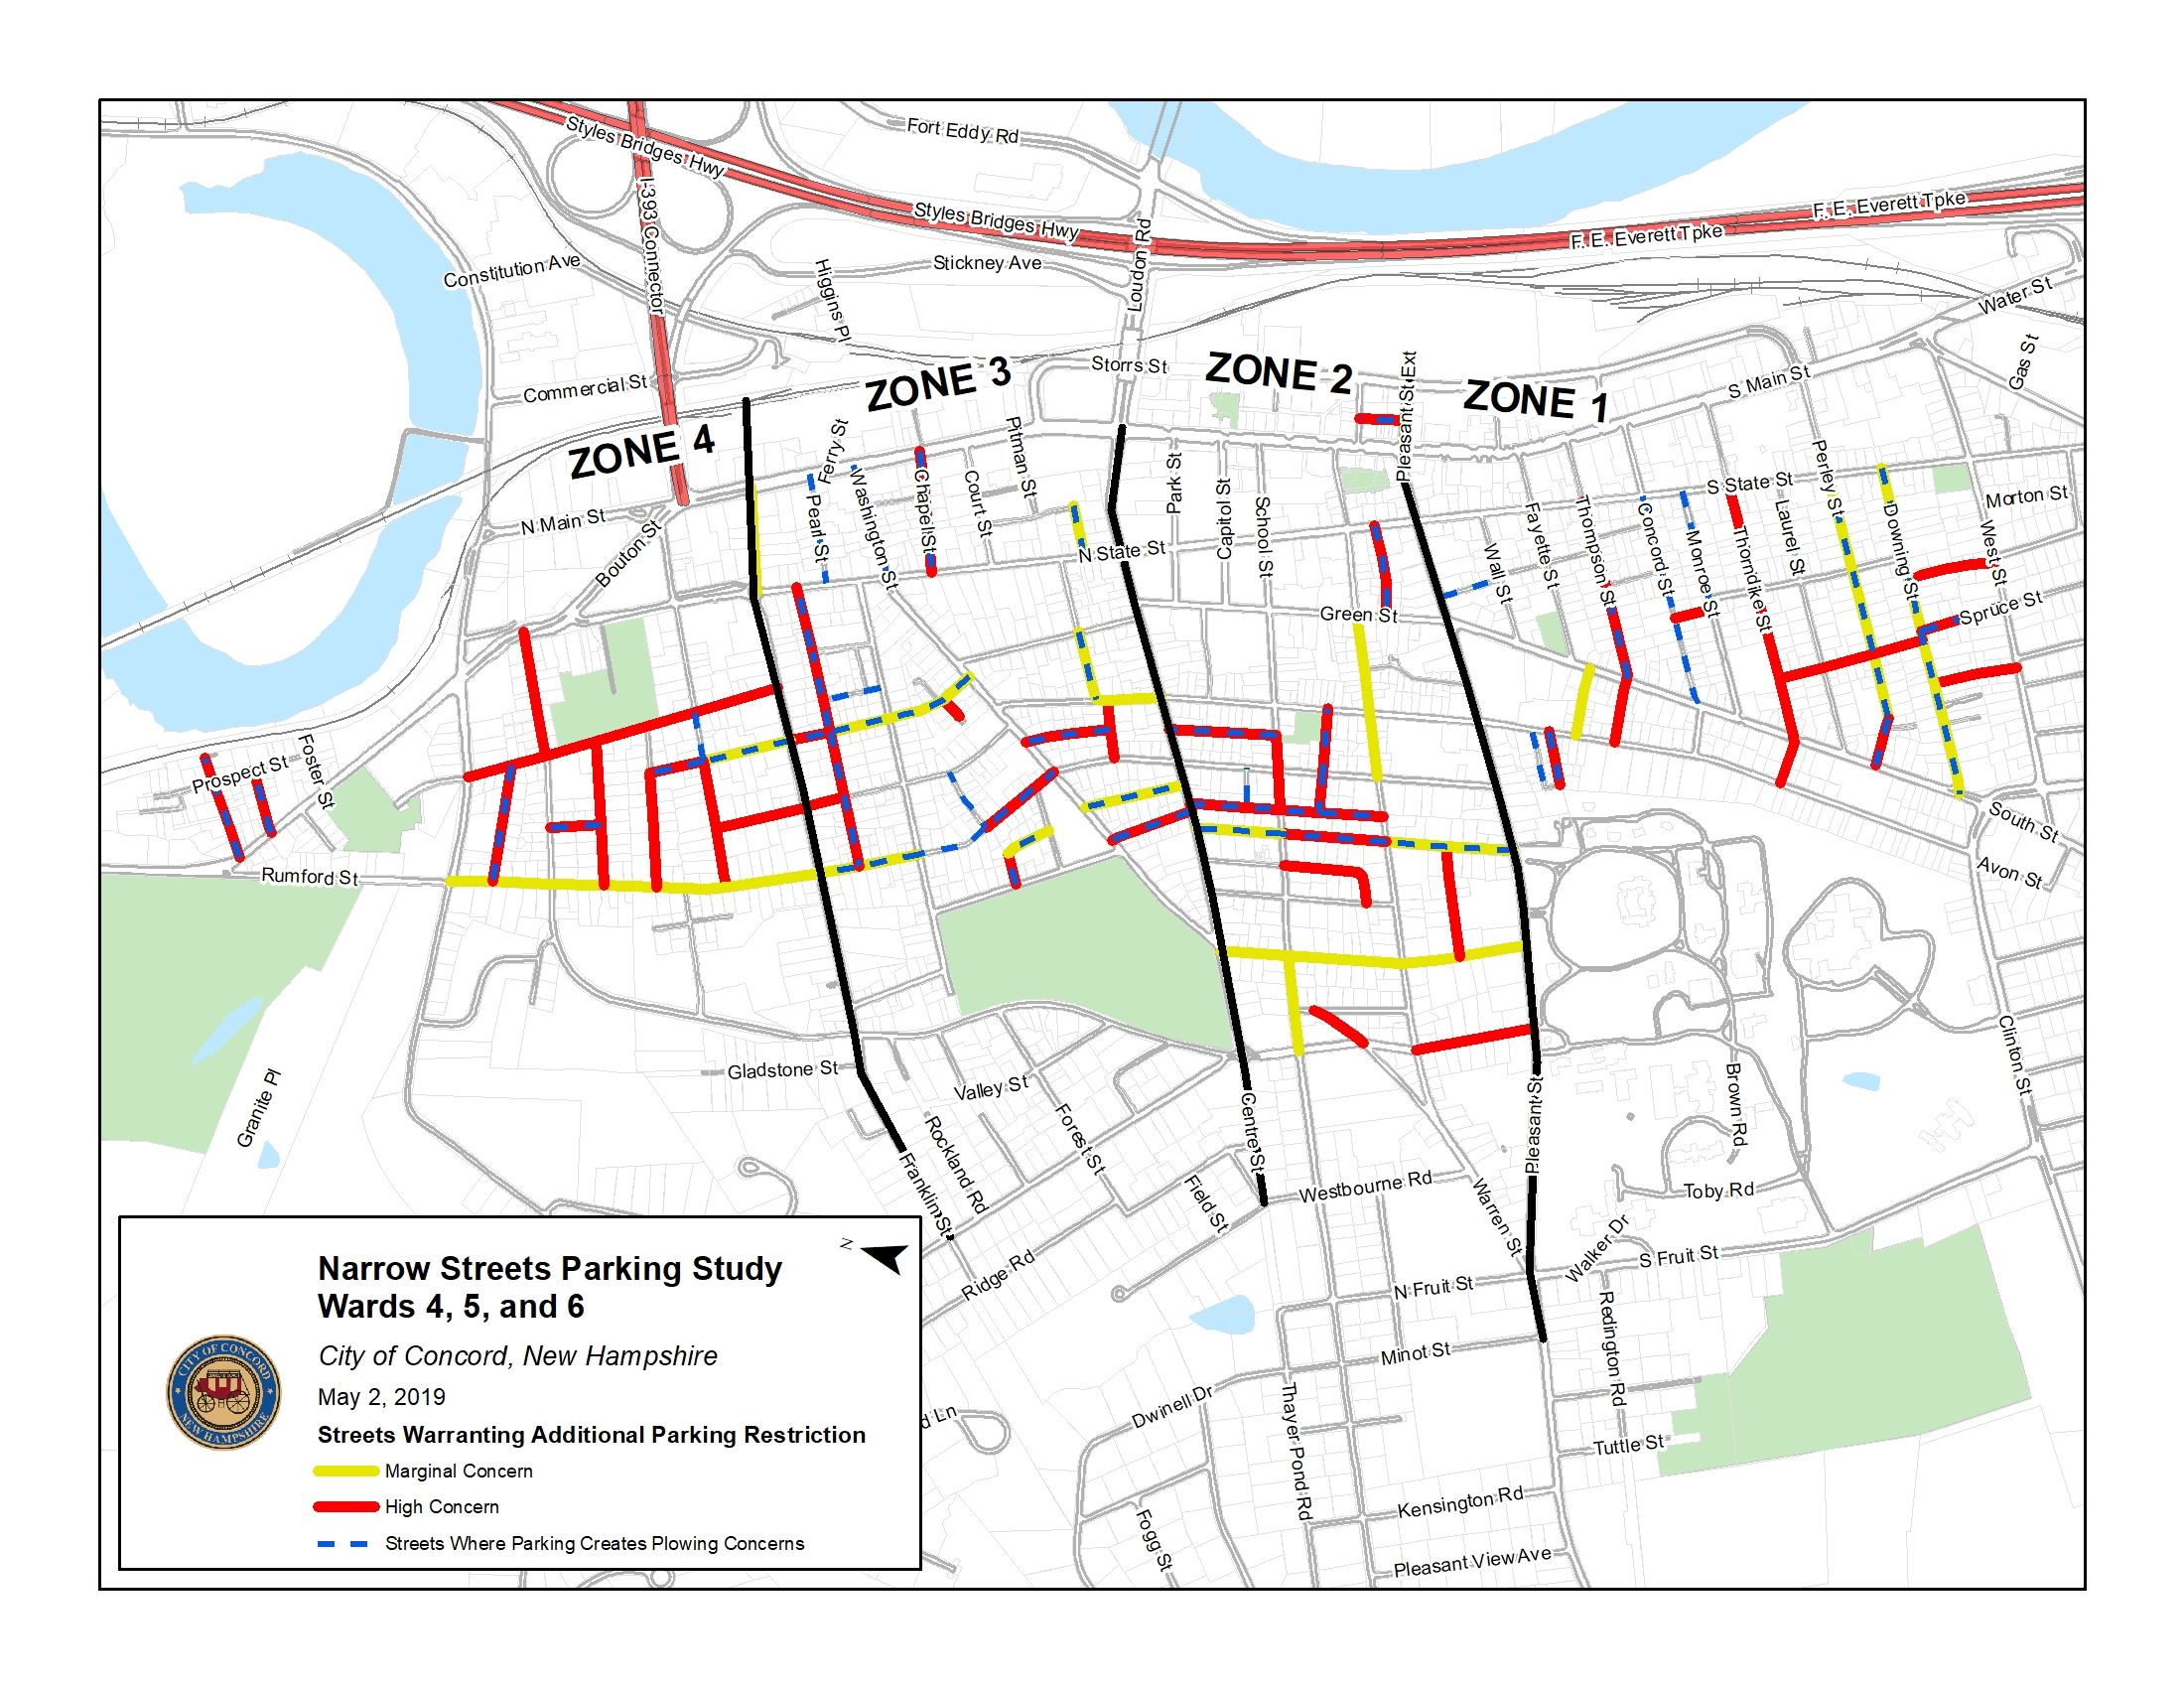 Map of Narrow Streets of Concern by Zone Opens in new window